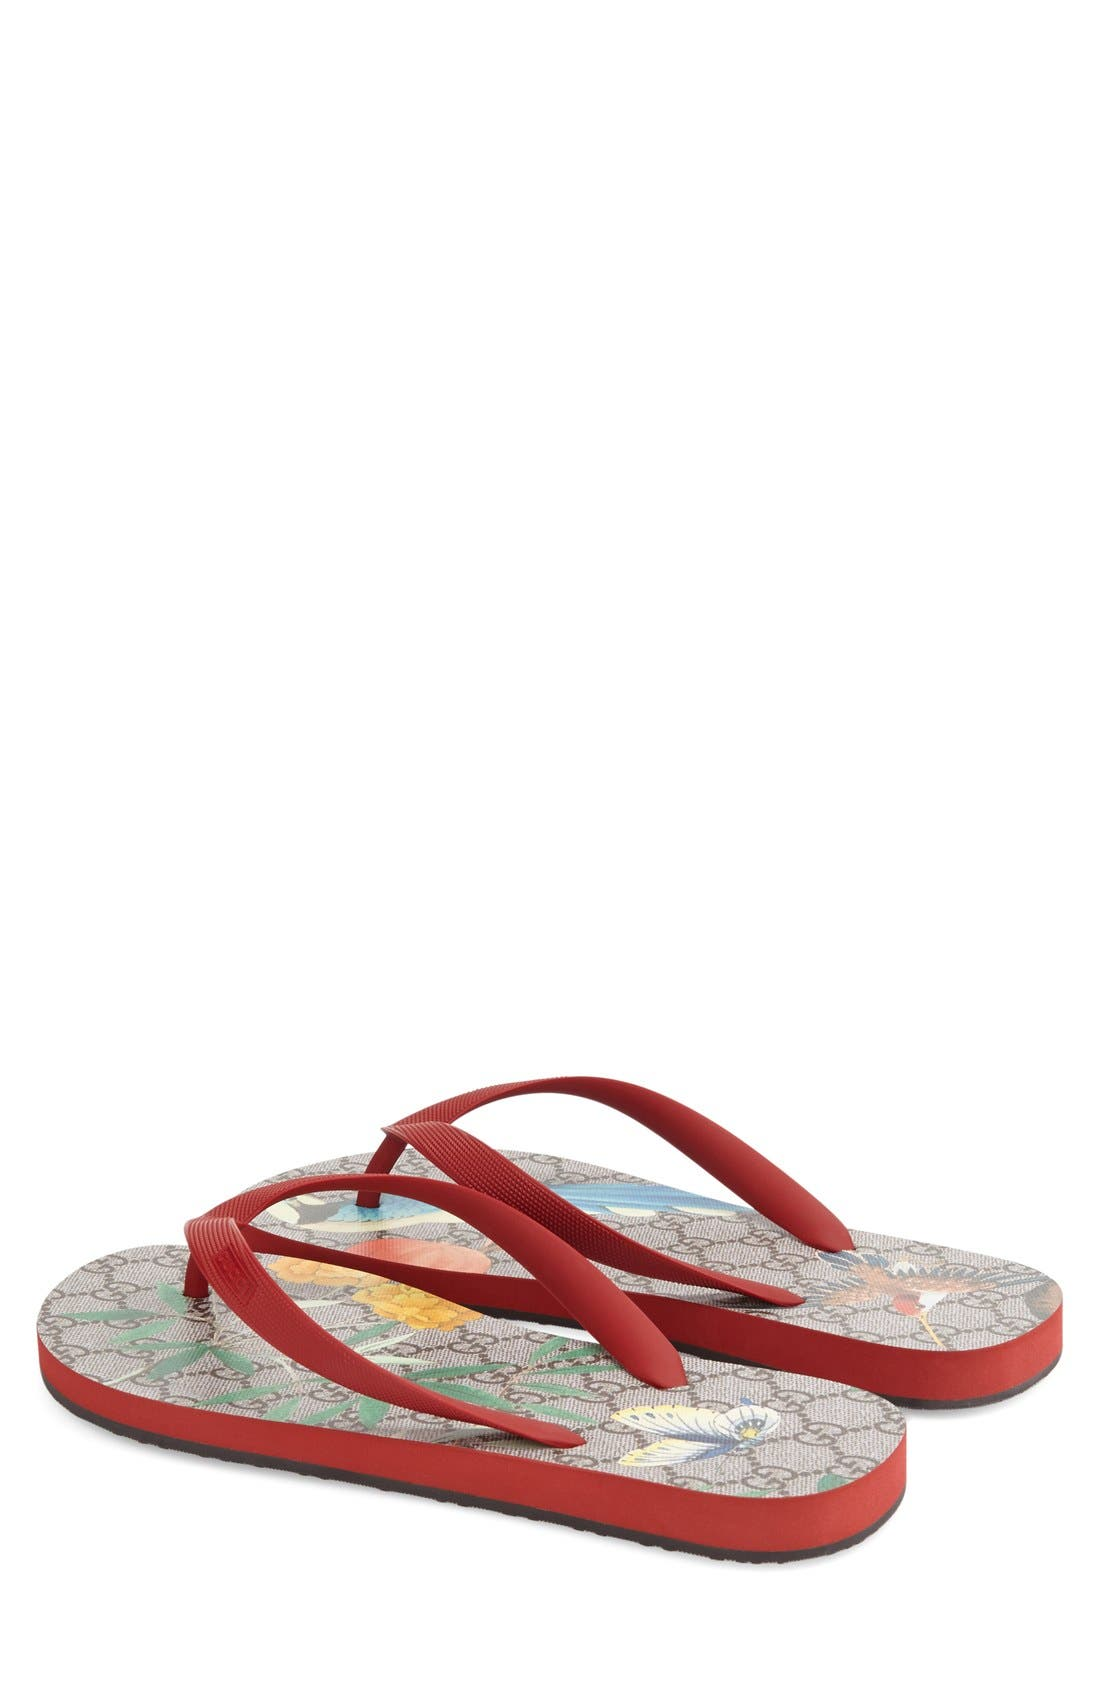 Alternate Image 2  - Gucci 'Bedlam' Flip Flop (Men)